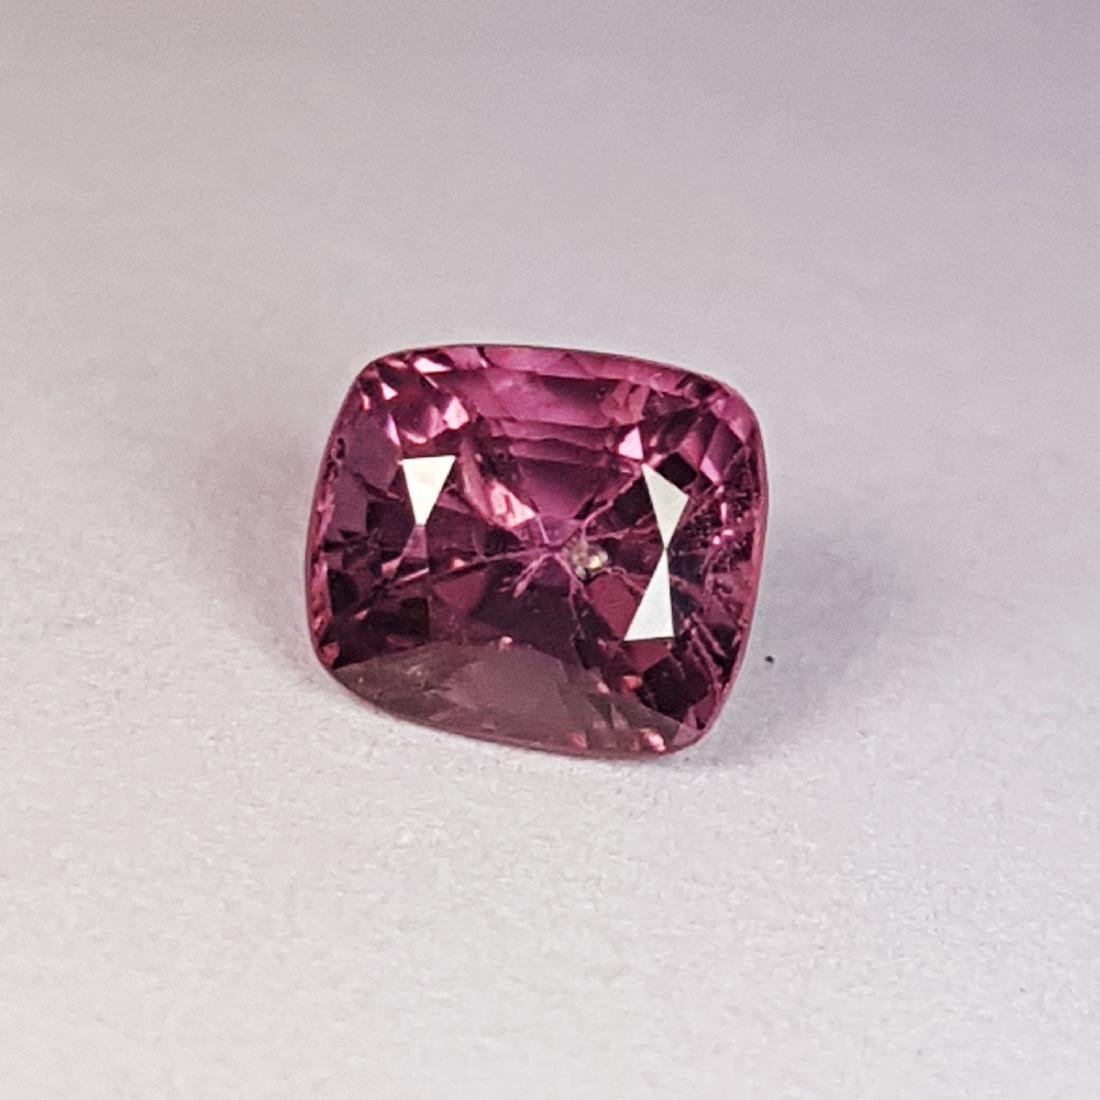 Spinel - 1.23 ct